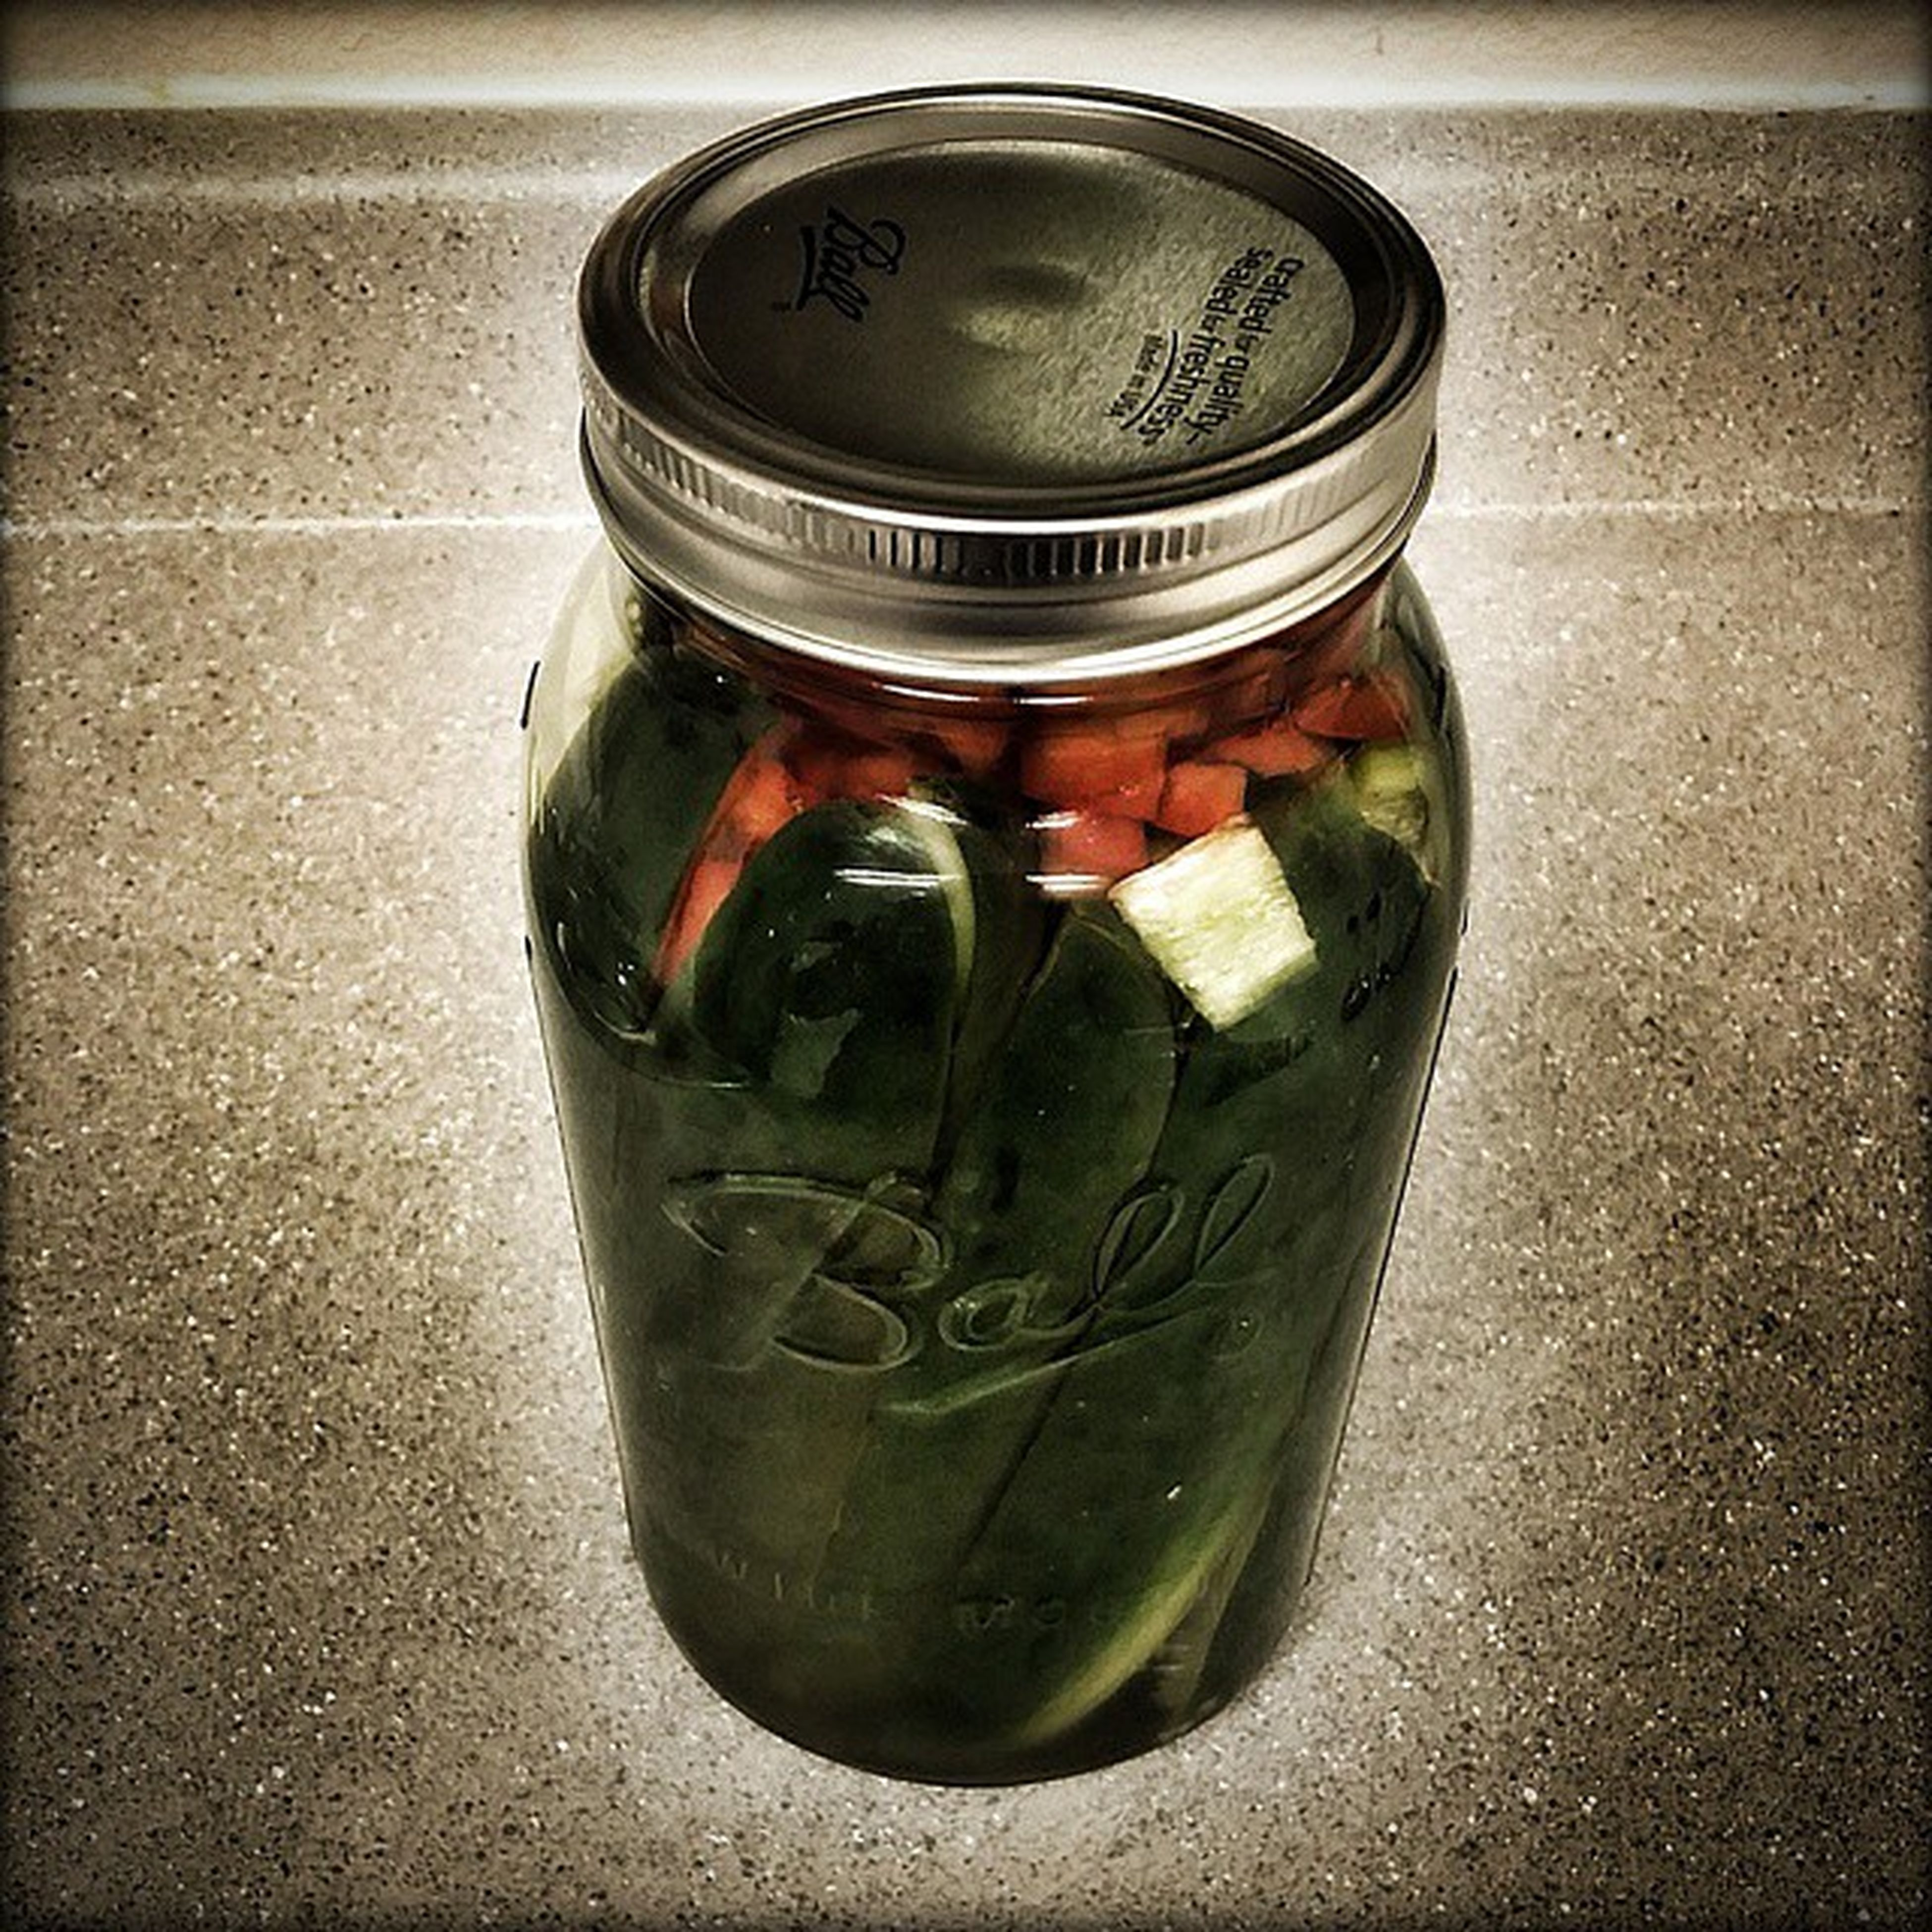 My Love @dlzrd is making Homemade DillPickles in a half gallon Ball Masonjars They will be done by Christmas . Ilovepickles DillPickleSpears PickleSpears Pickles Canning HalfGallon Cellphonephotography Pixlromatic Pictureoftheday Picoftheday Photooftheday Portorchardwashington Samsunggalaxynote3